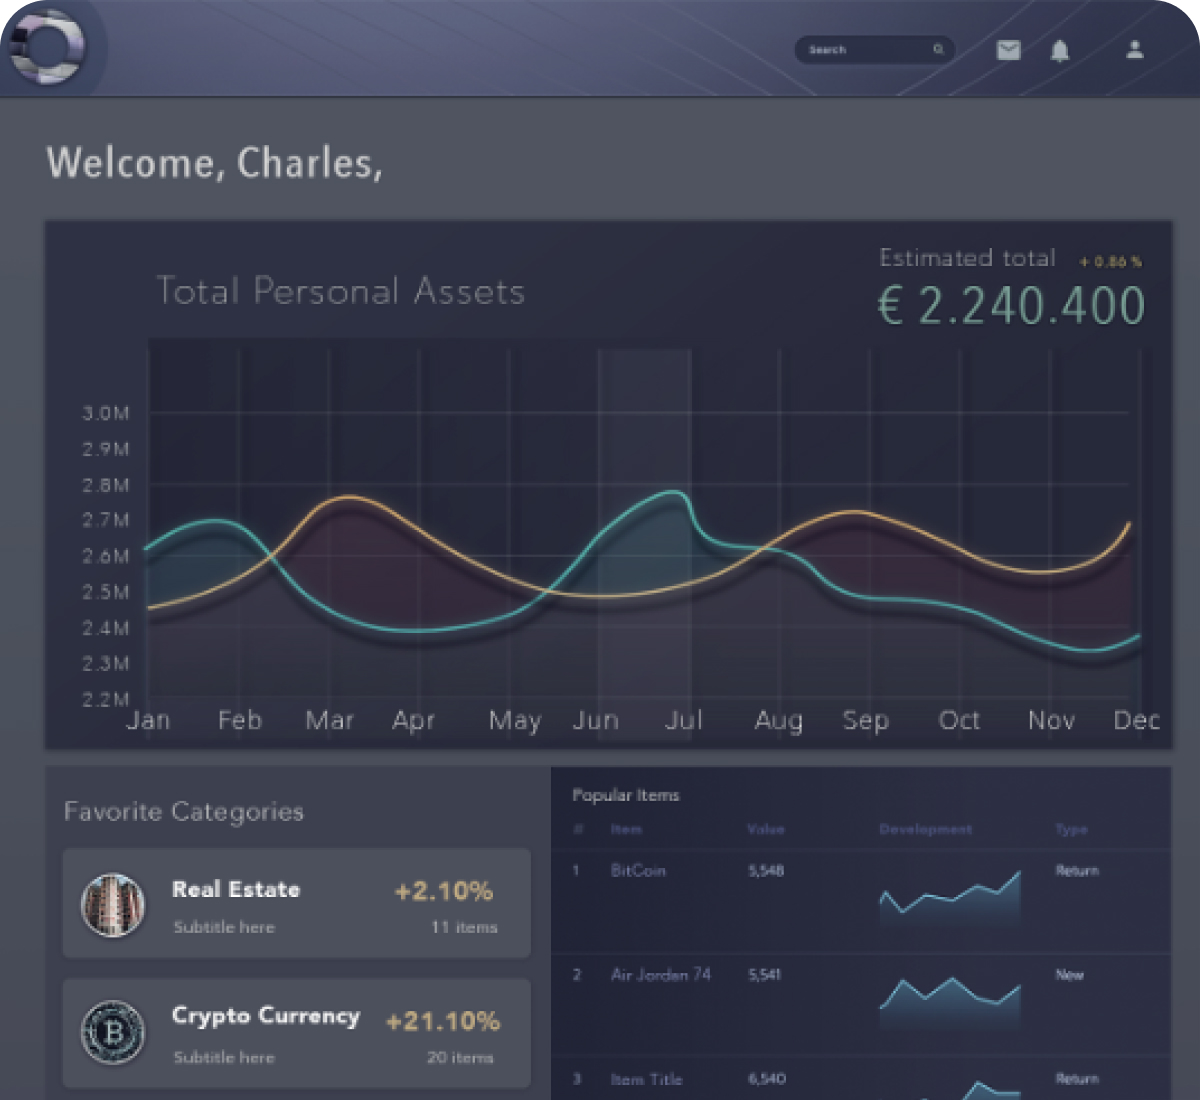 A dashboard showing a users total wealth across a variety of asset classes